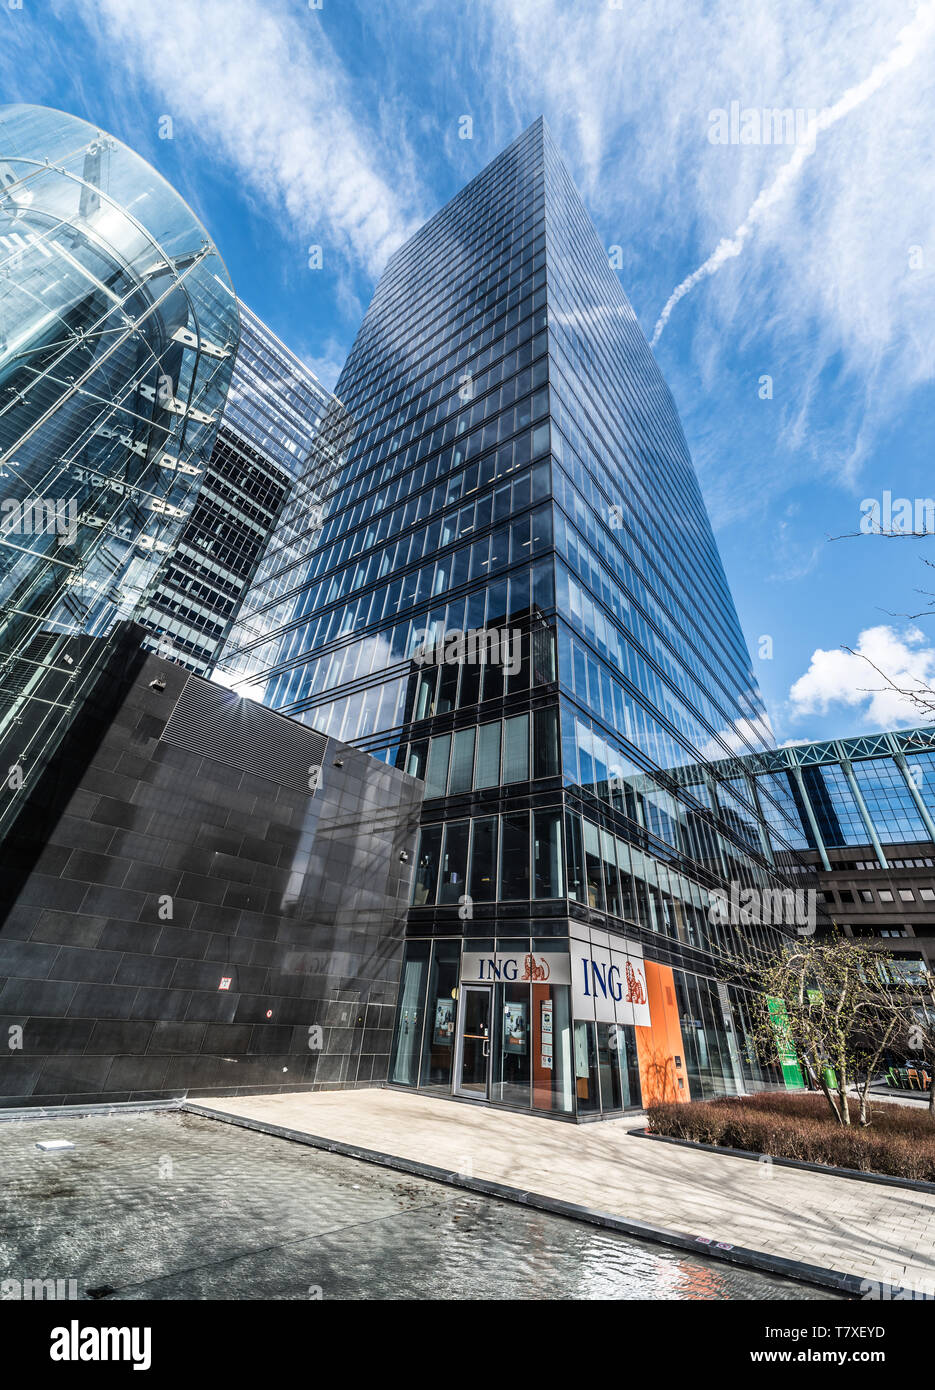 Brussels, Belgium - 03 10 2019: An ING banking agency in the financial North district next to the North Galaxy tower - Stock Image